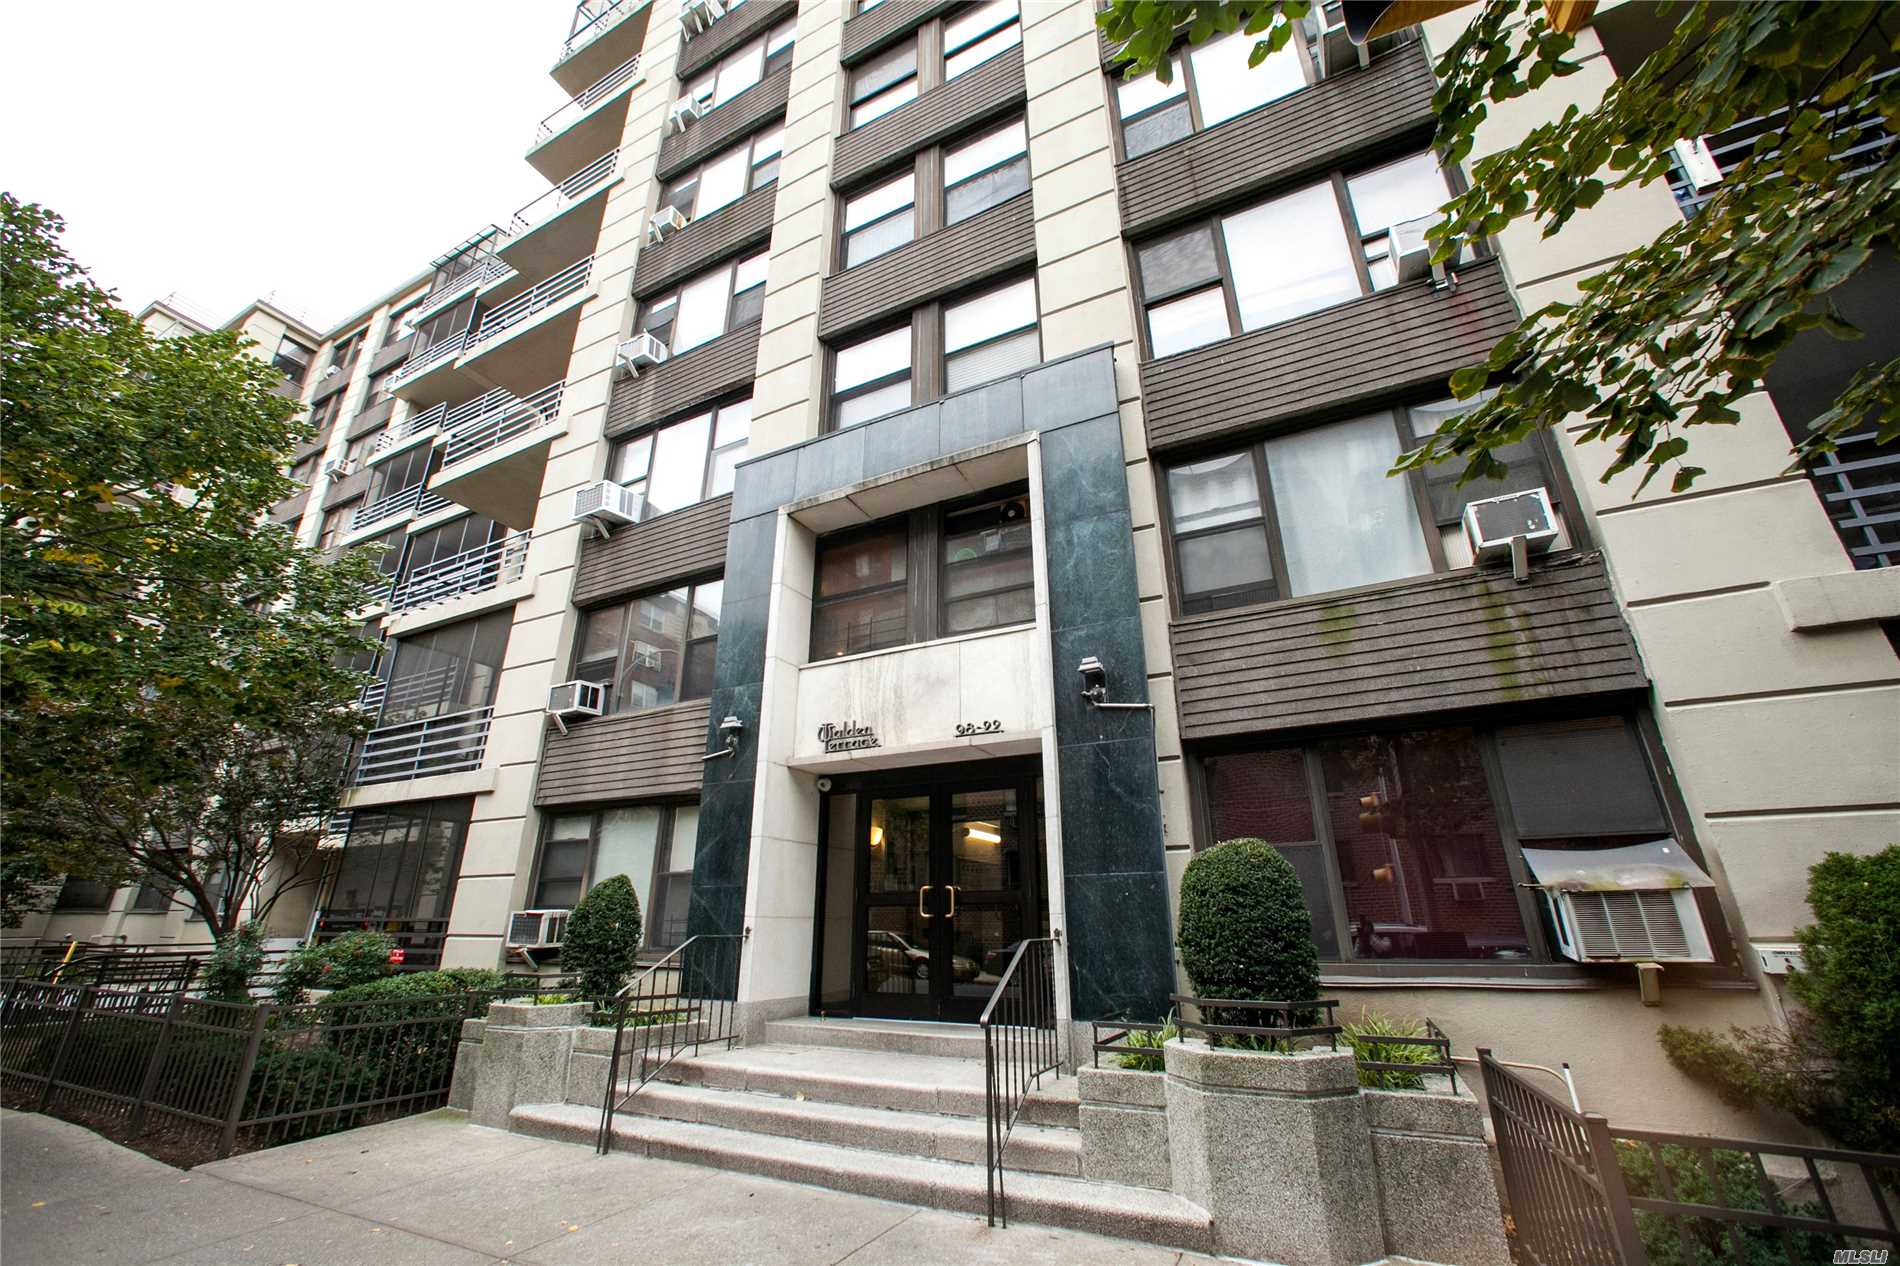 Great Studio In A Great Location In Rego Park. All Utilities Included! Sunken Living/Sleeping Area, Large Closet Space, Dining Area And Separate Kitchen. Close To M&R Trains, Rego Park Center Mall, Buses, Parks, Shops, Restaurants.